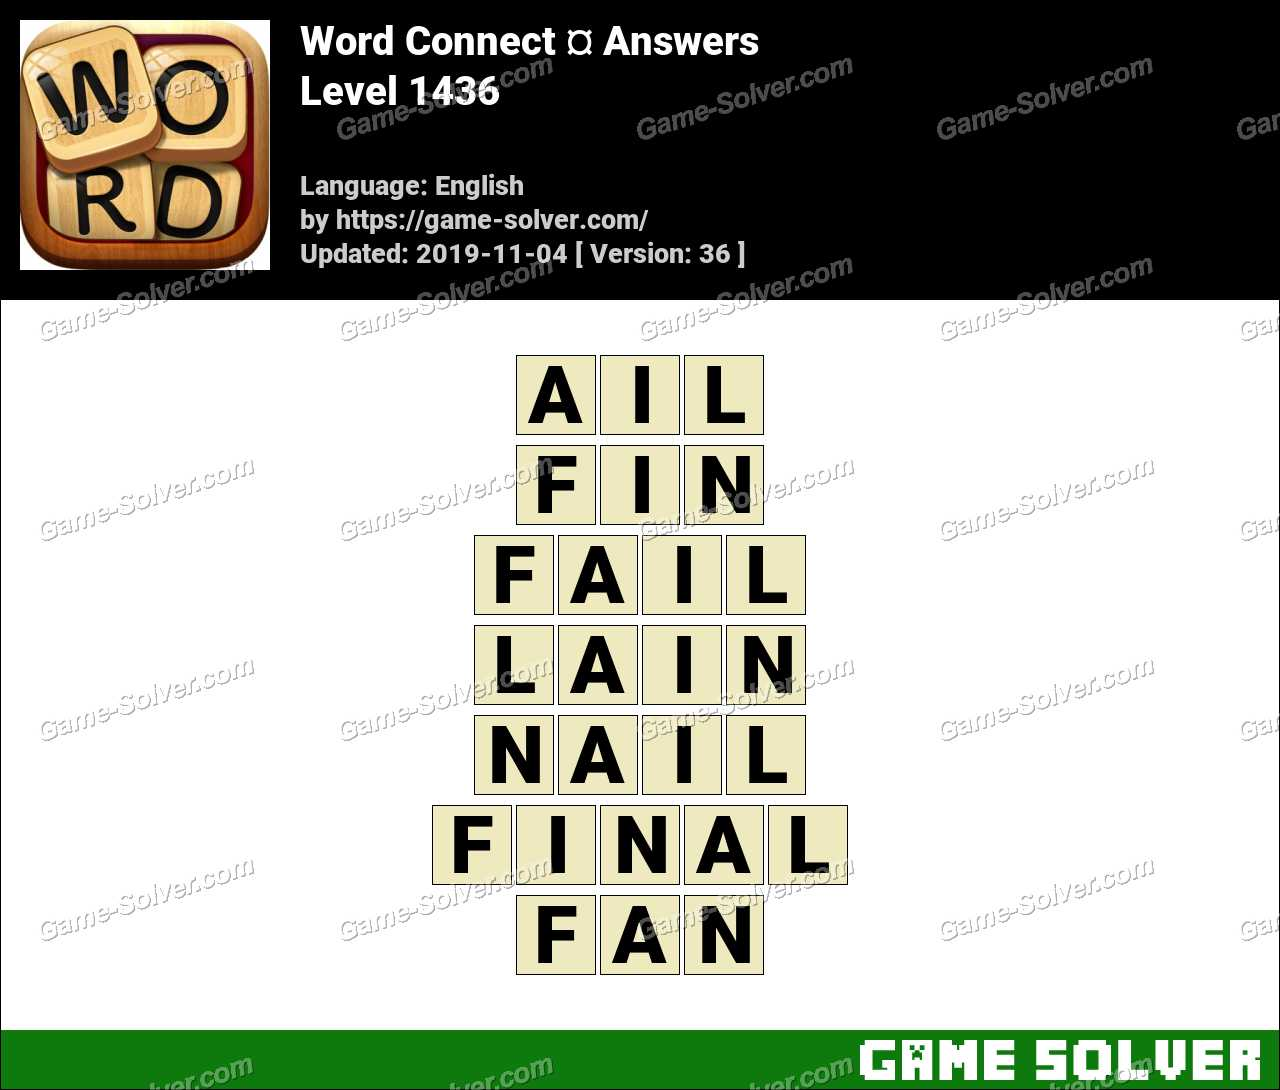 Word Connect Level 1436 Answers